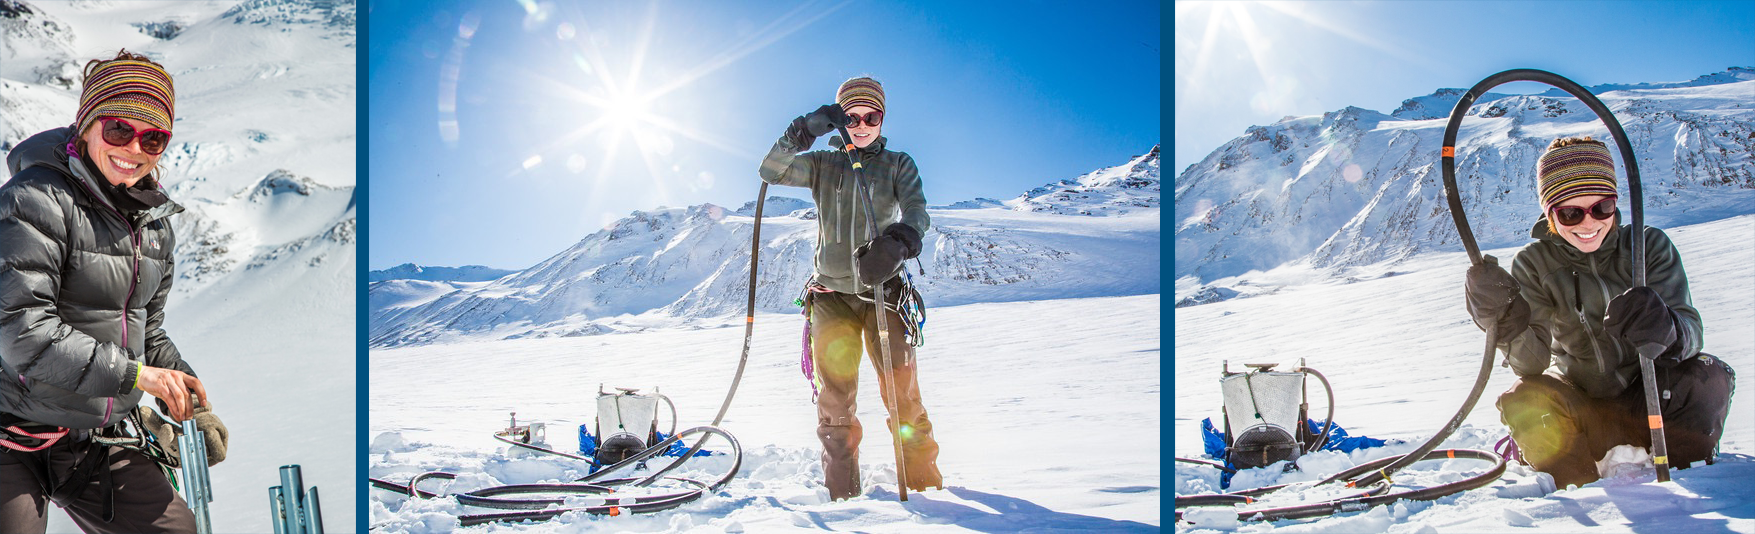 Joanna is   i  nstalling instruments to monitor local weather conditions on the Jarvis Glacier in the Alaska Range,  photoes by      U AF photographer Todd Paris